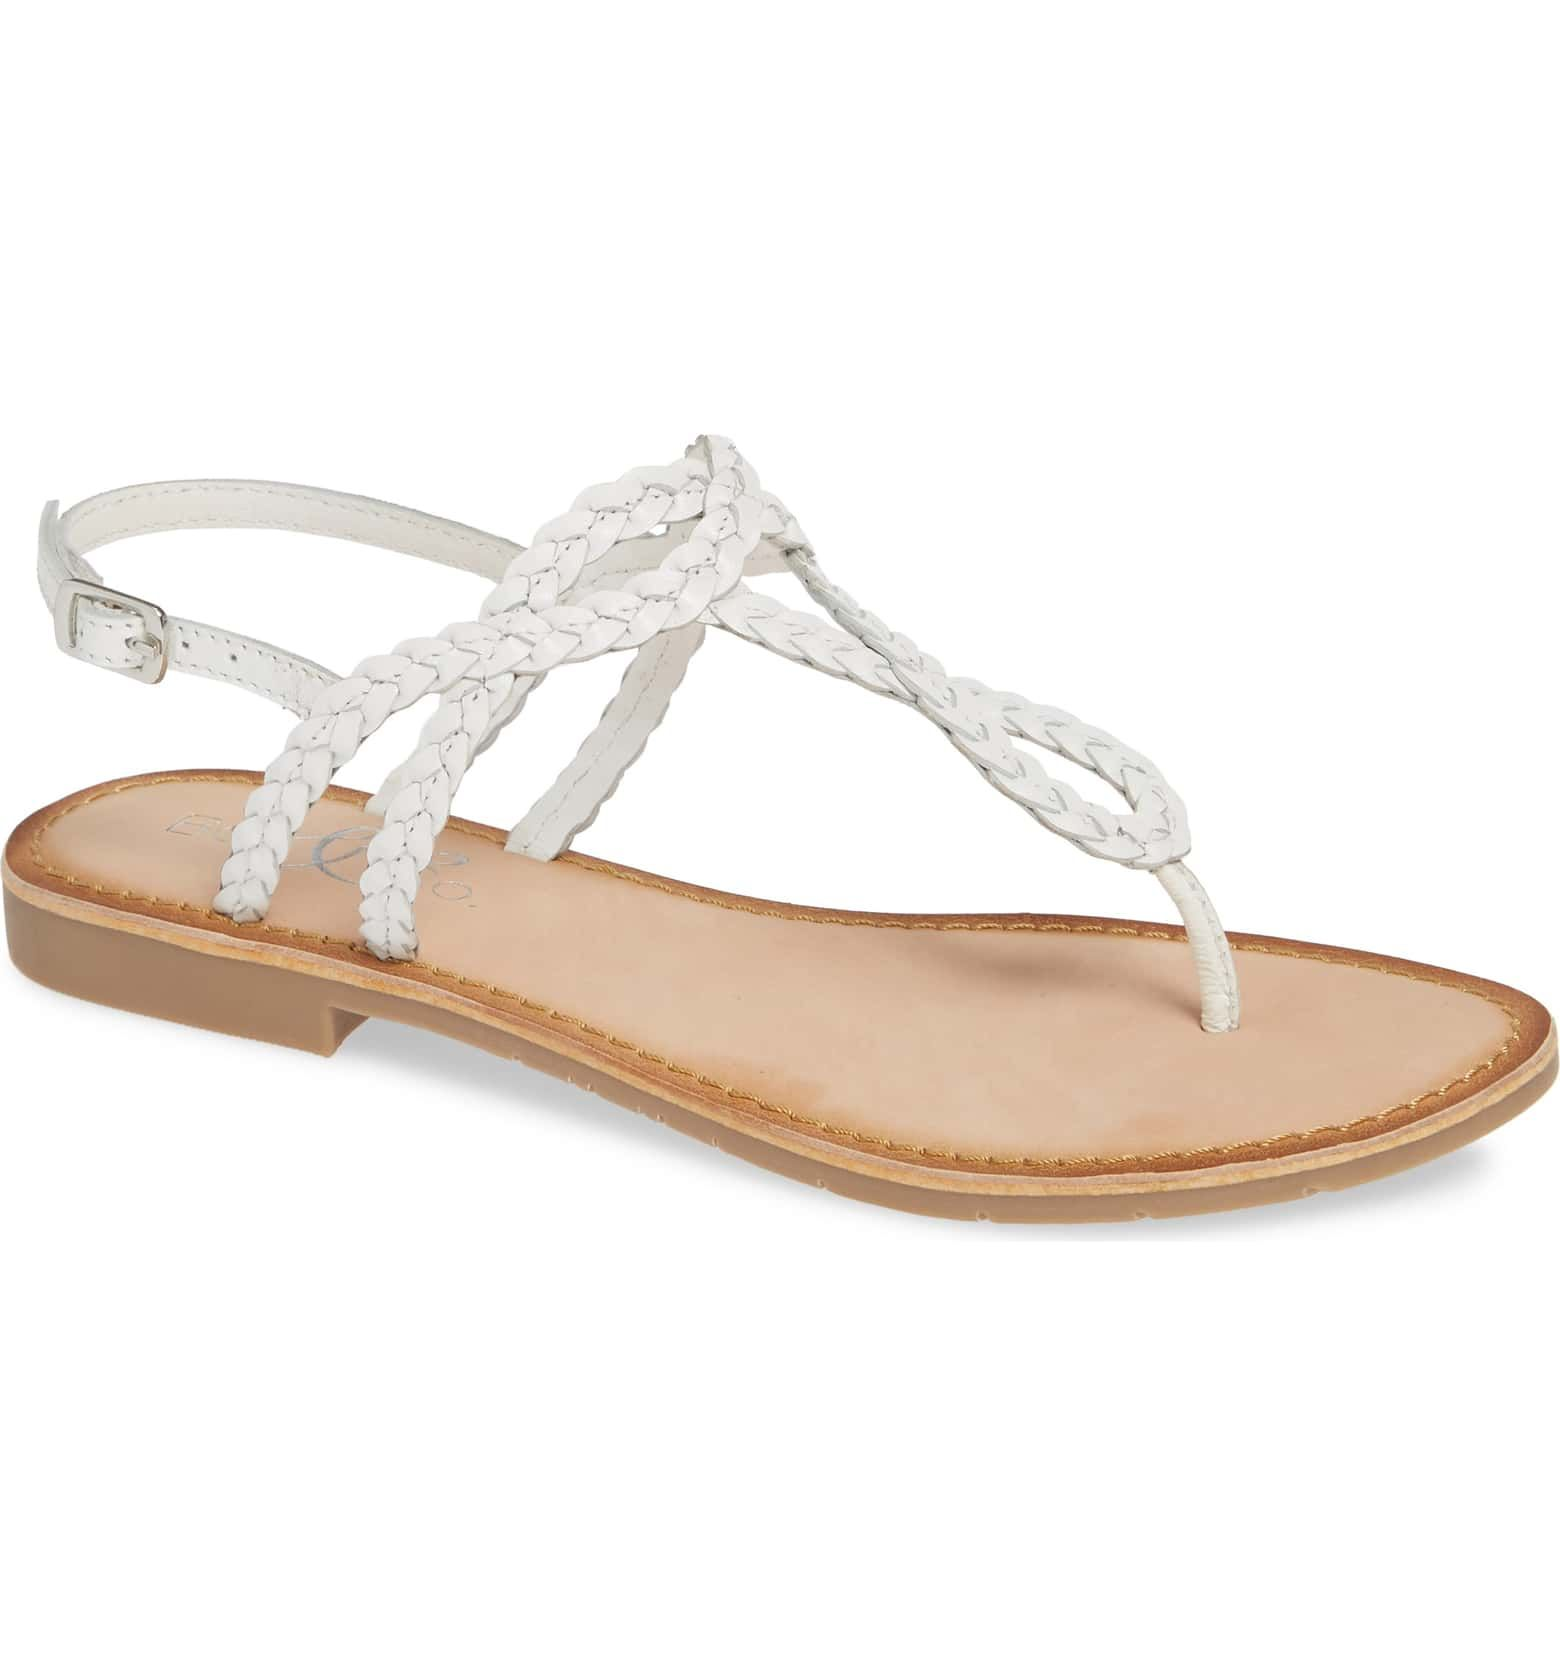 Bridal Shoes At Nordstrom: Bos. & Co. Gael Sandal (Women In 2019